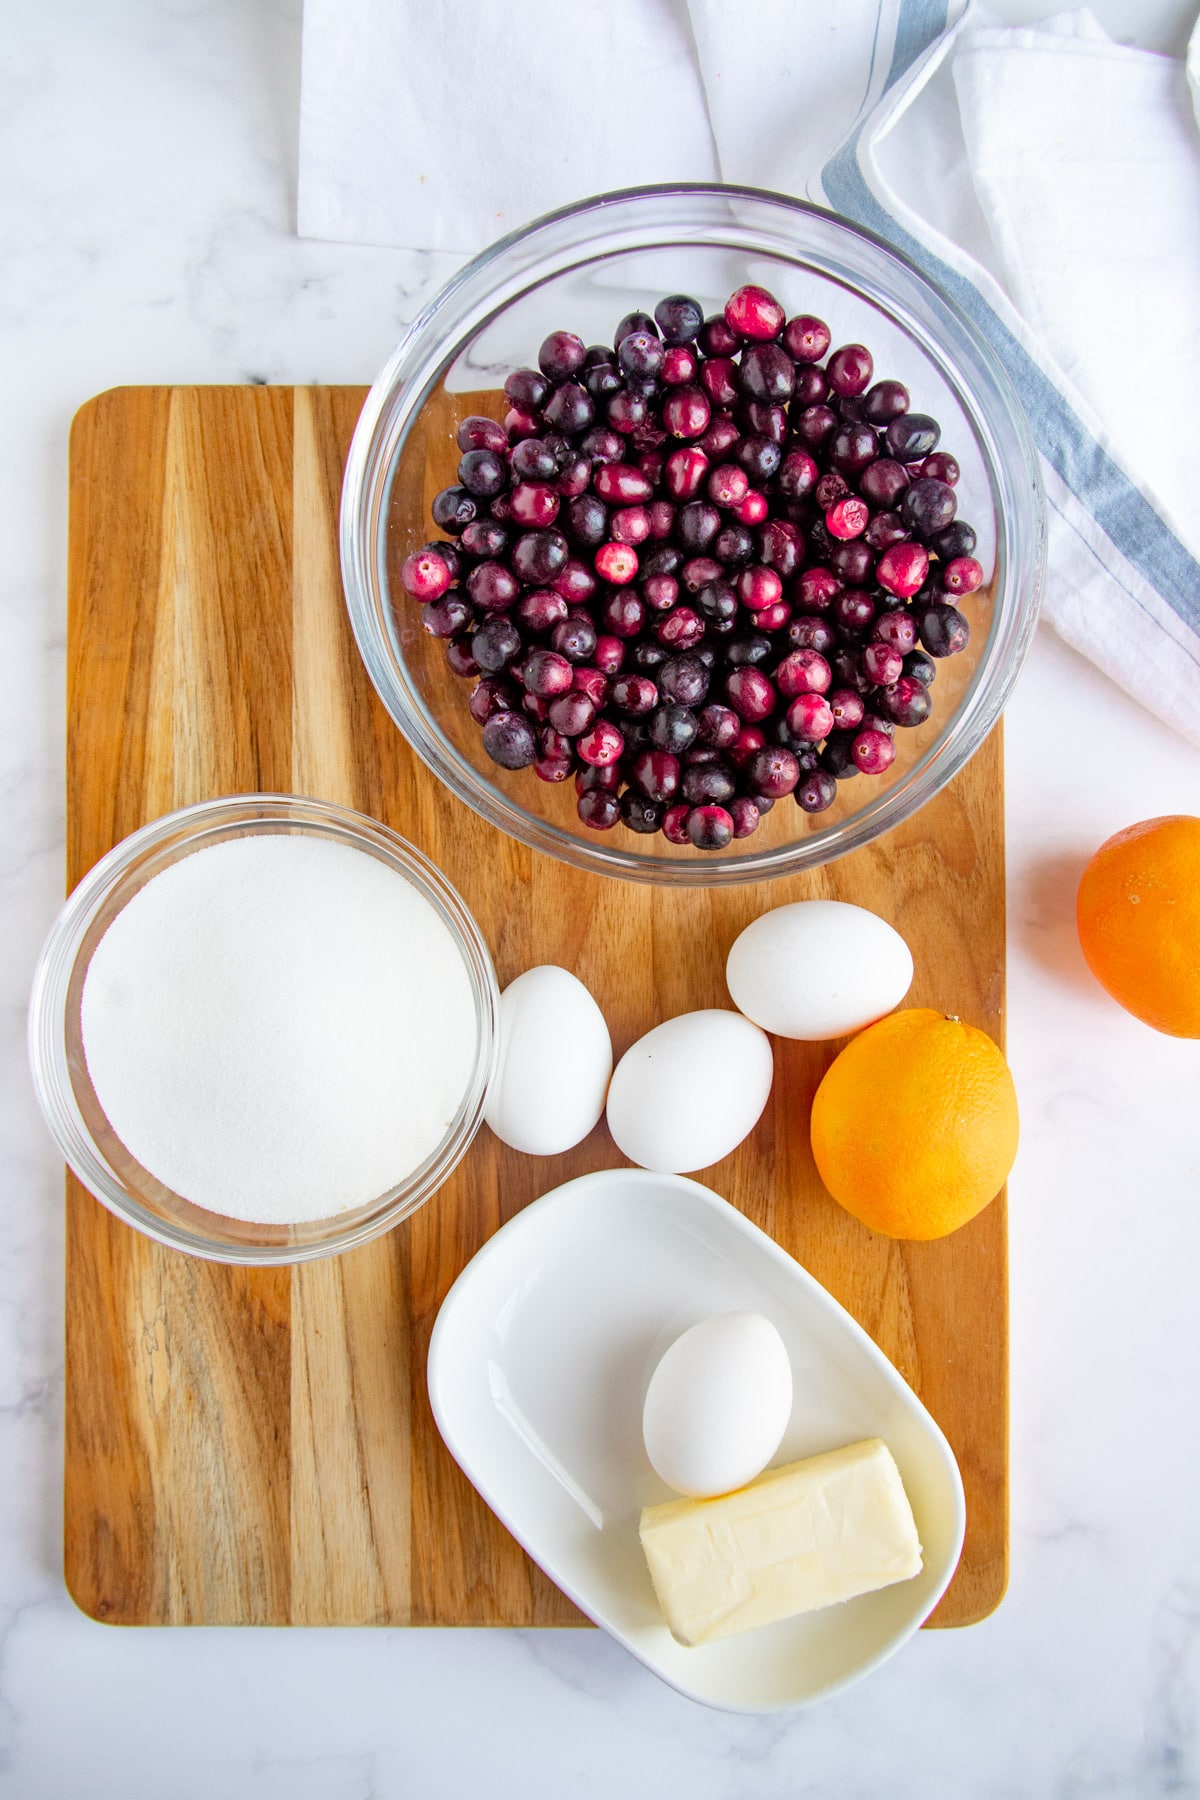 The  cranberry curd ingredients - fresh cranberries, sugar, yellow, eggs and fresh oranges